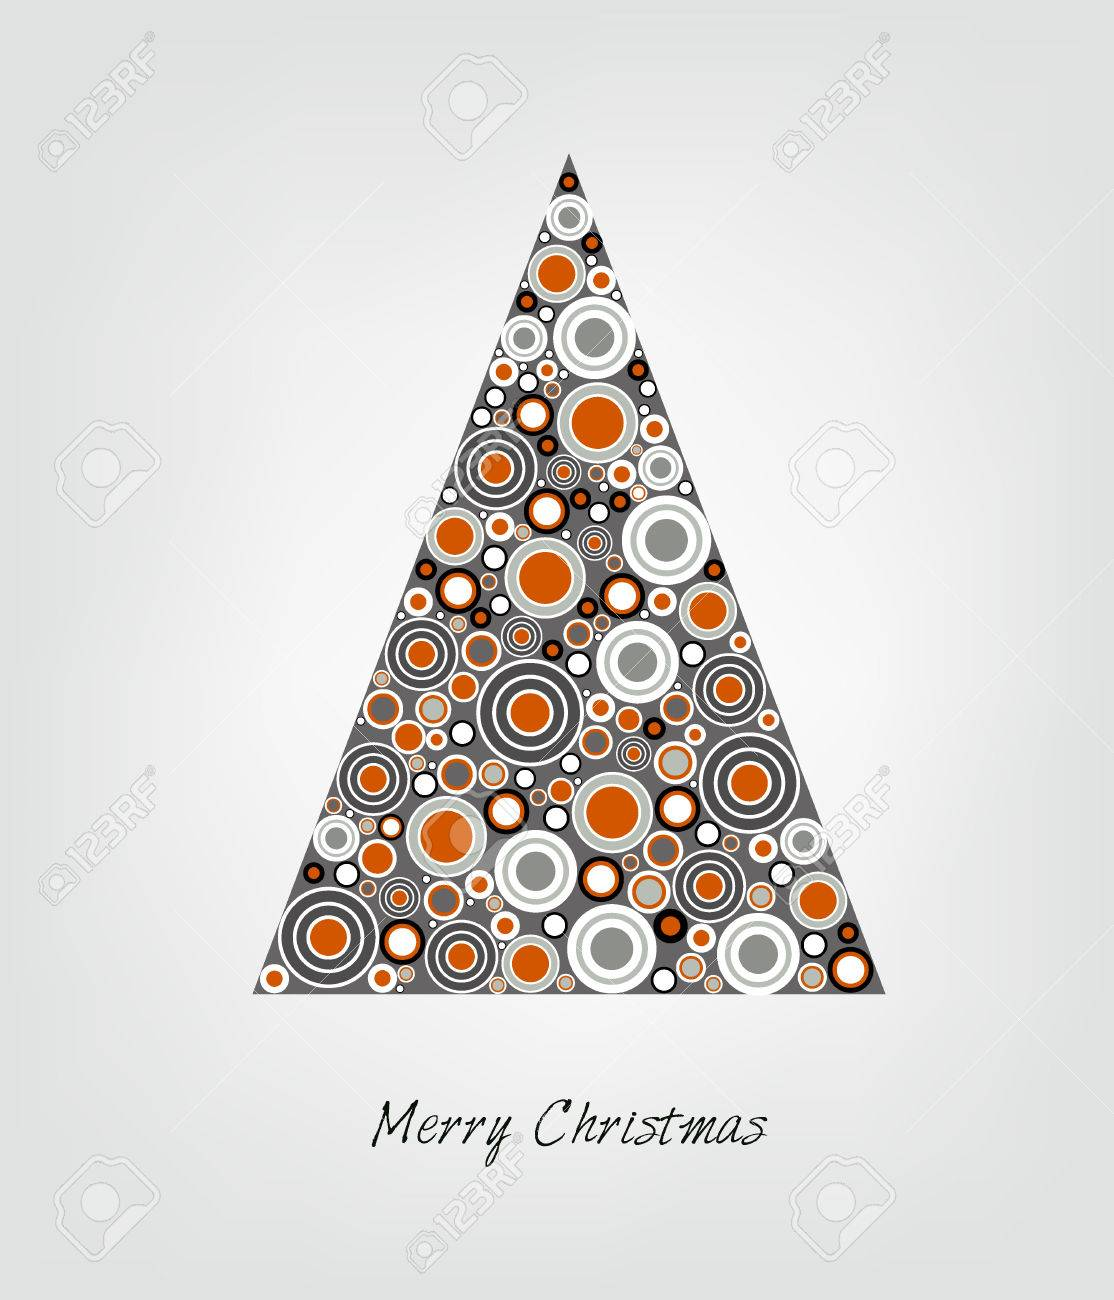 Christmas card  Stylized Christmas tree  Circle patern  Vector backgroun Illustration Stock Vector - 23241847